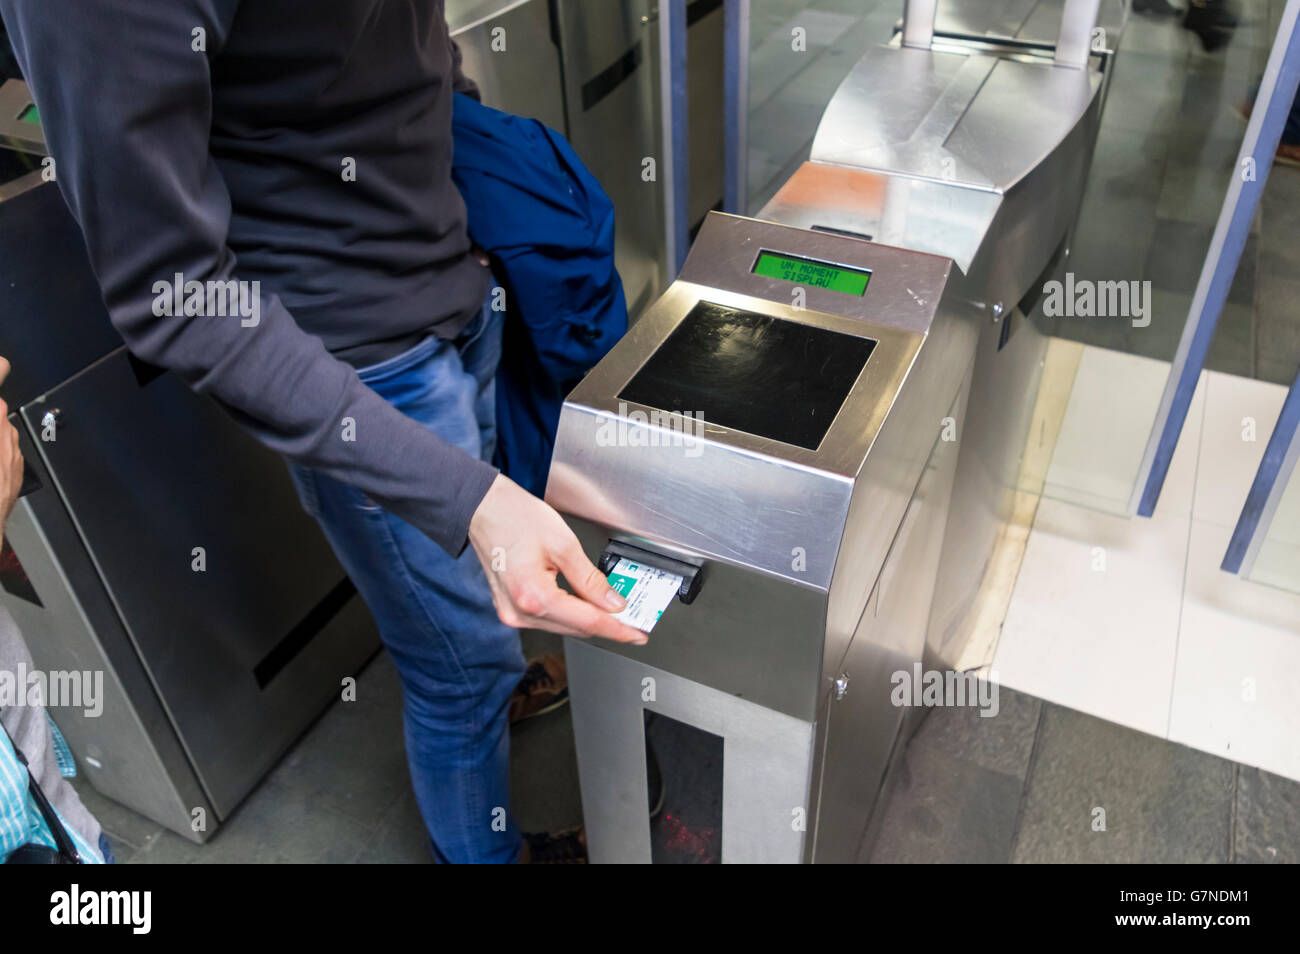 Man inserting a ticket into a ticket checking machine to get access to the Barcelona metro system. - Stock Image